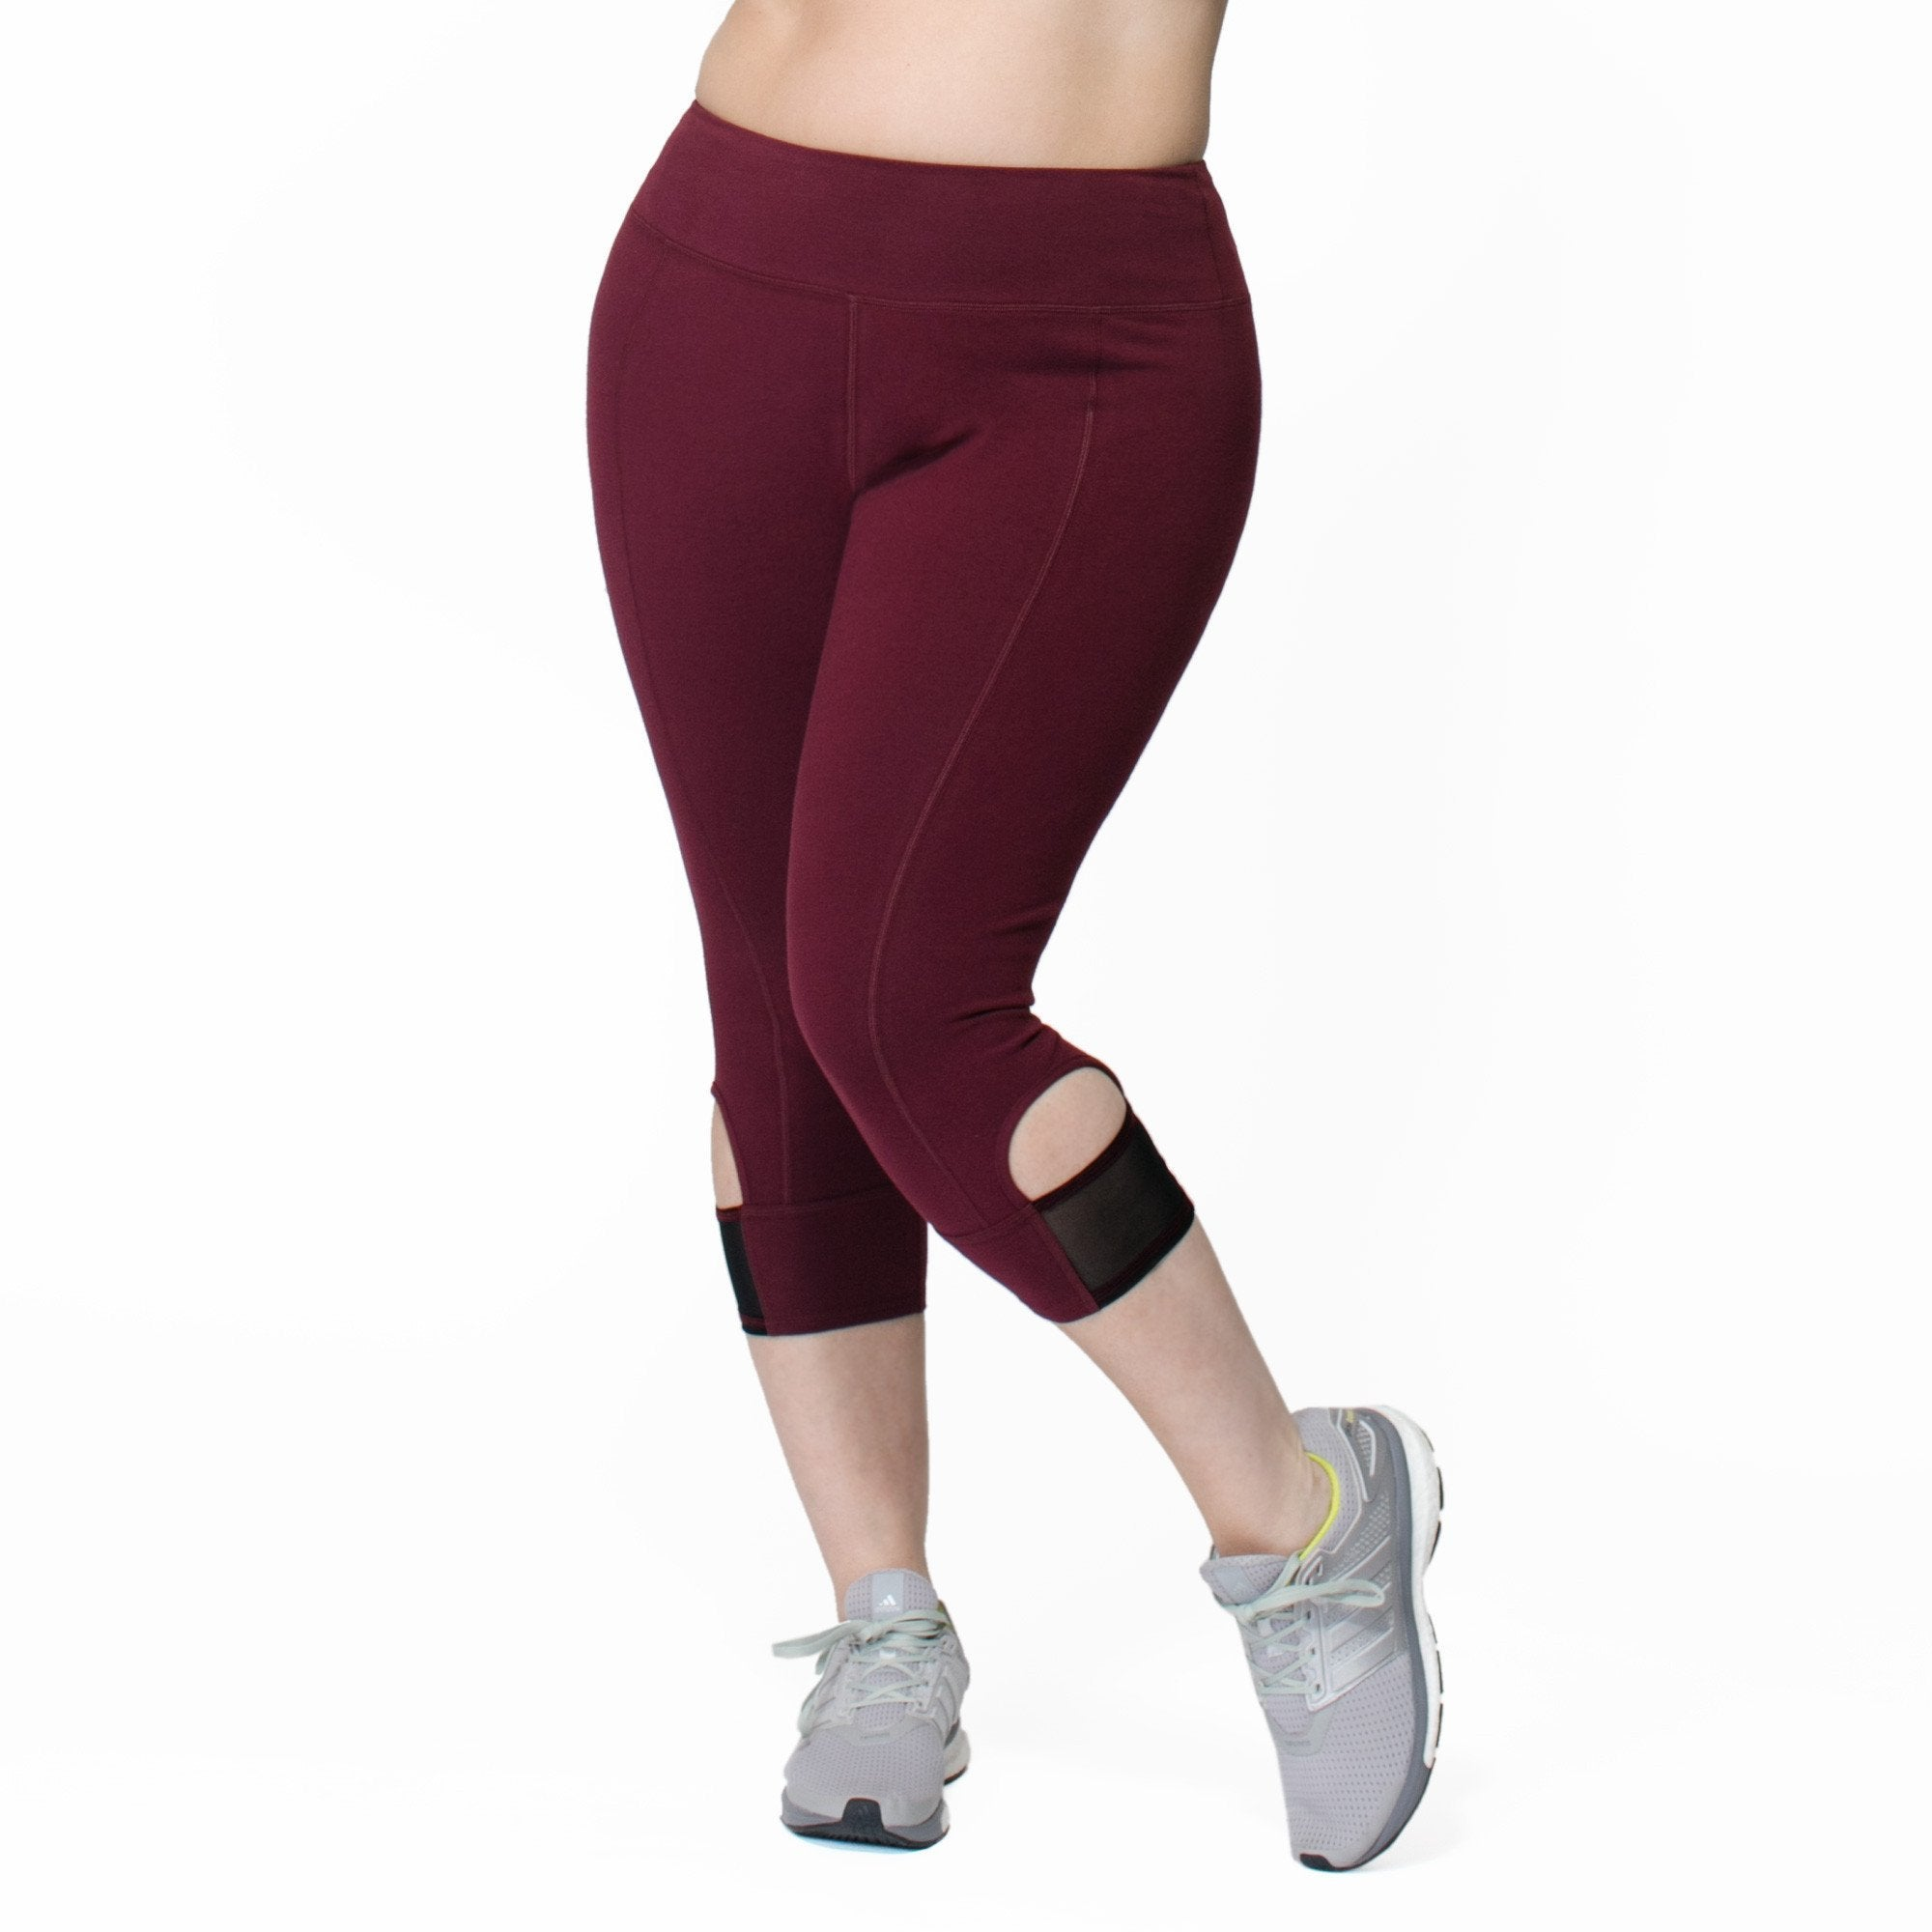 Janet Capri - Rainbeau Curves, 14/16 / Elderberry, activewear, athleisure, fitness, workout, gym, performance, womens, ladies, plus size, curvy, full figured, spandex, cotton, polyester - 1